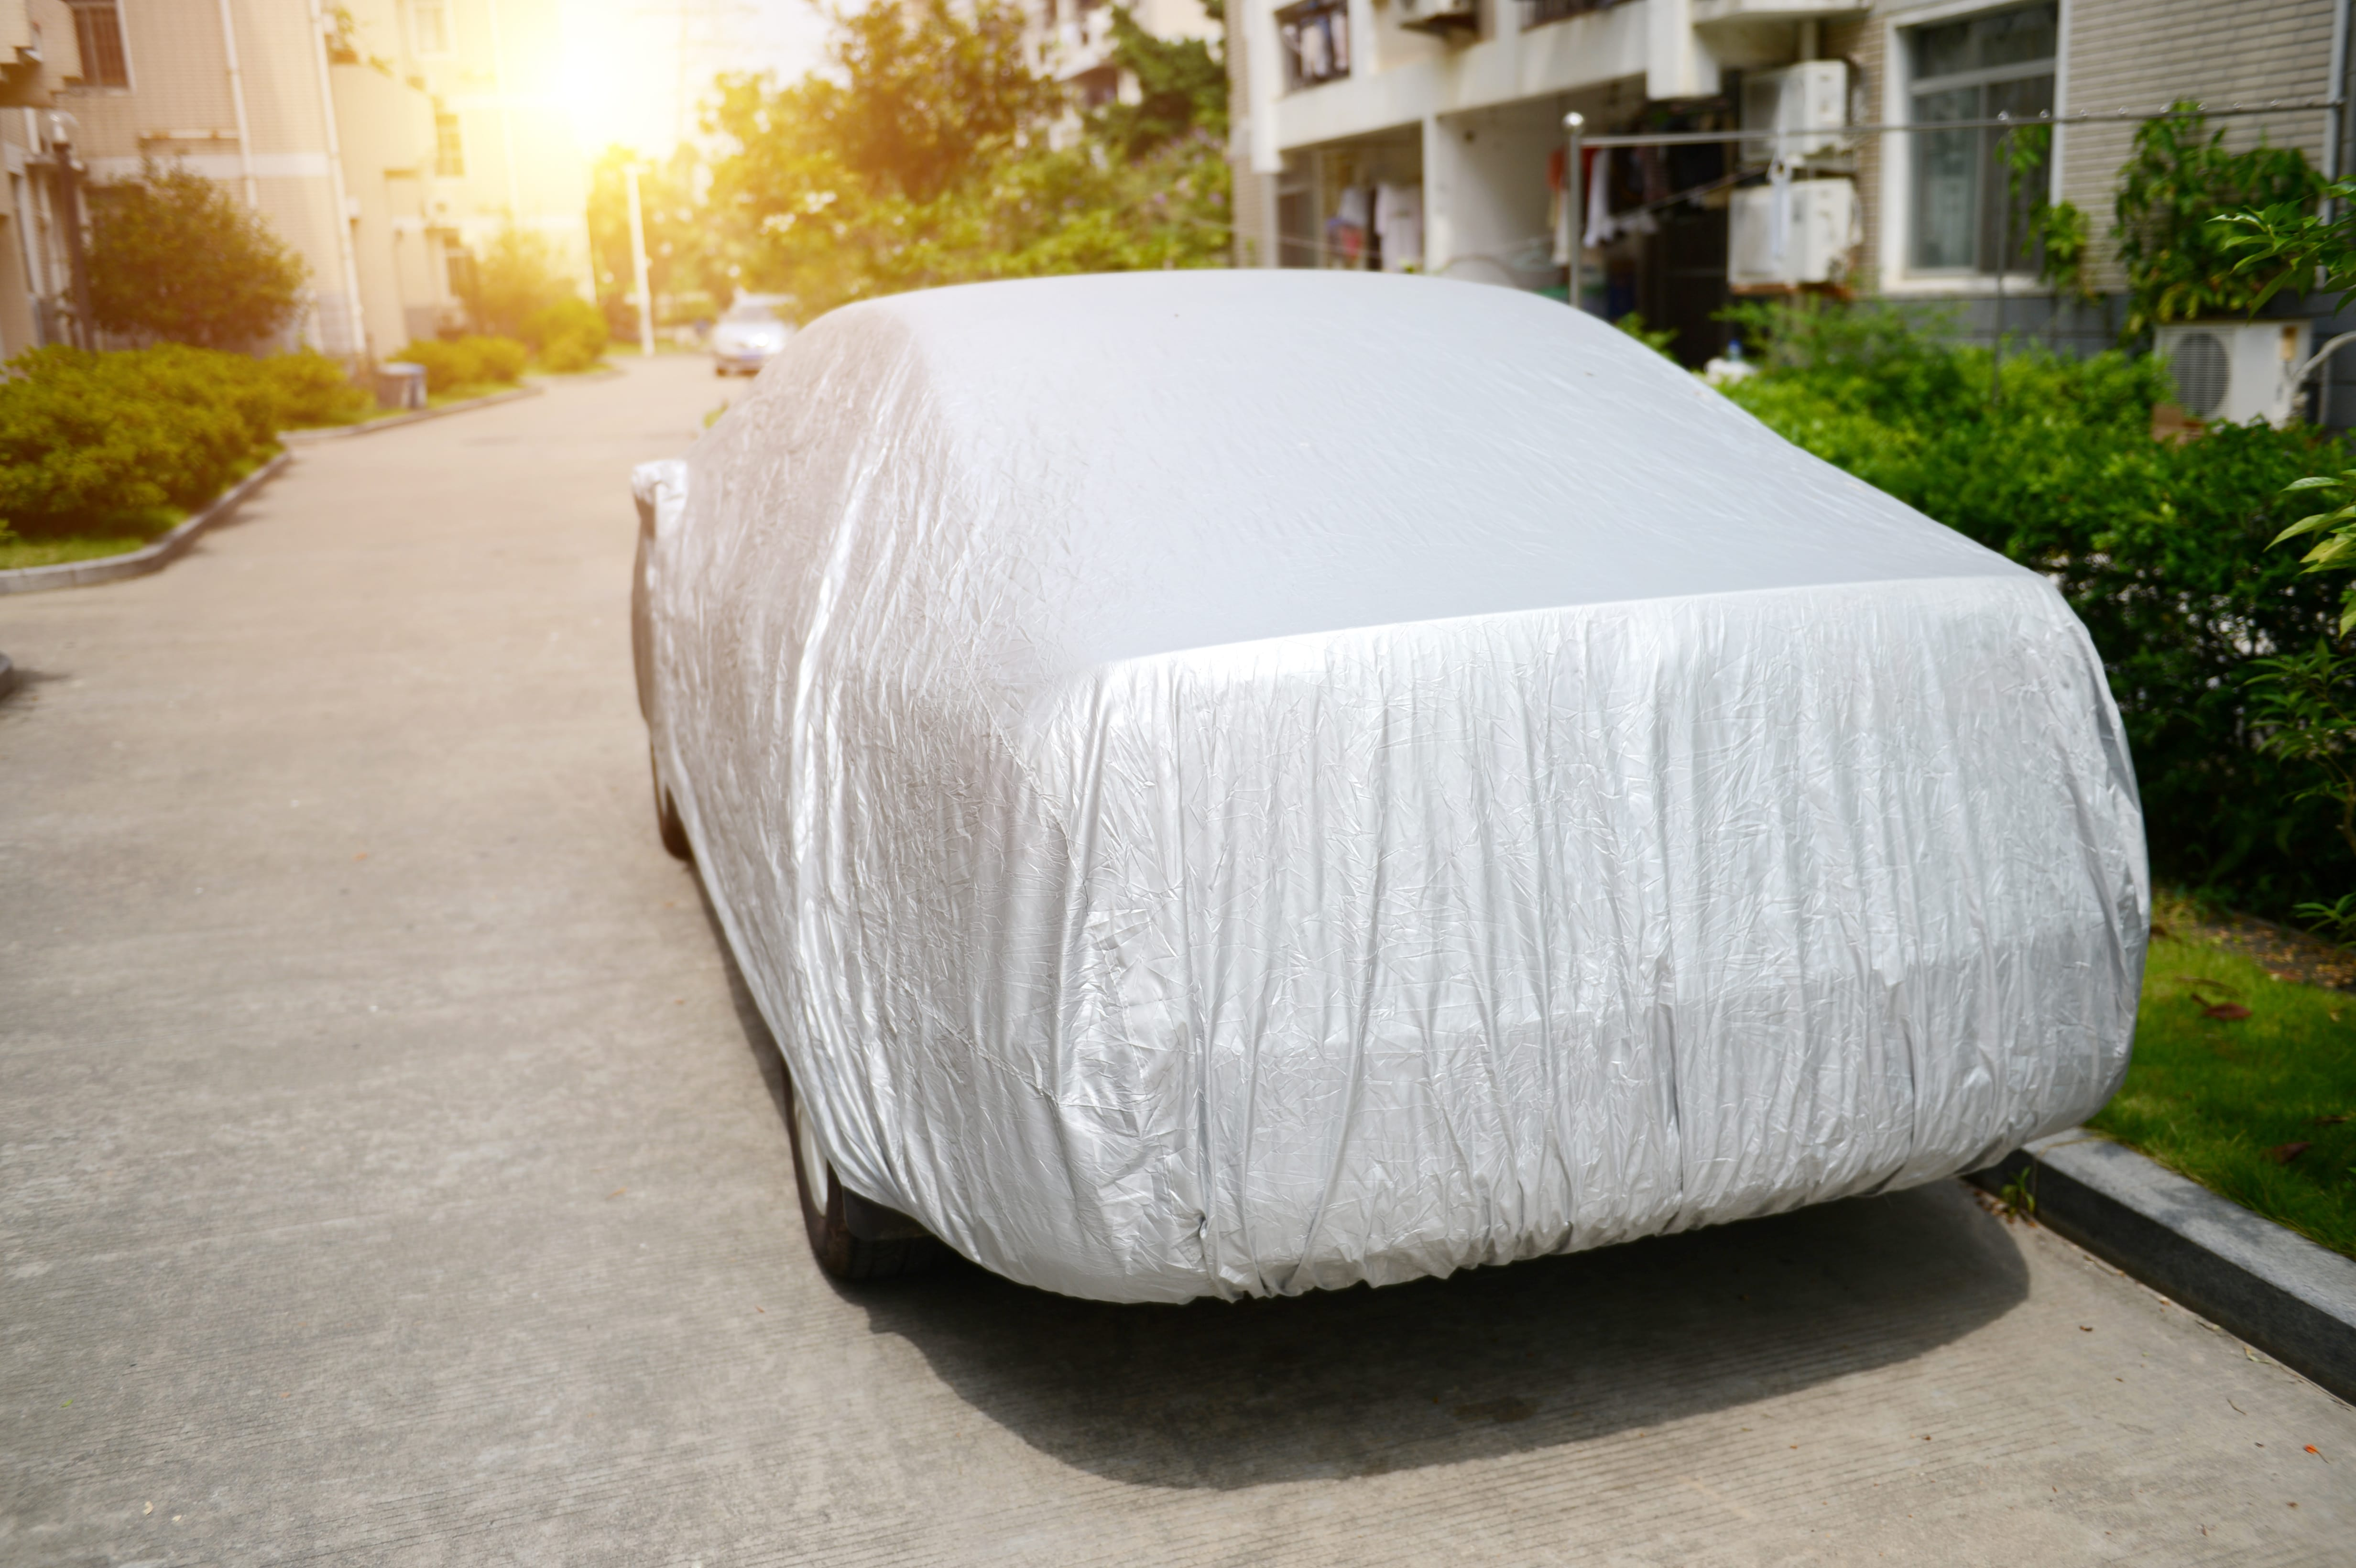 car-cover-sheet-sunlight-protection